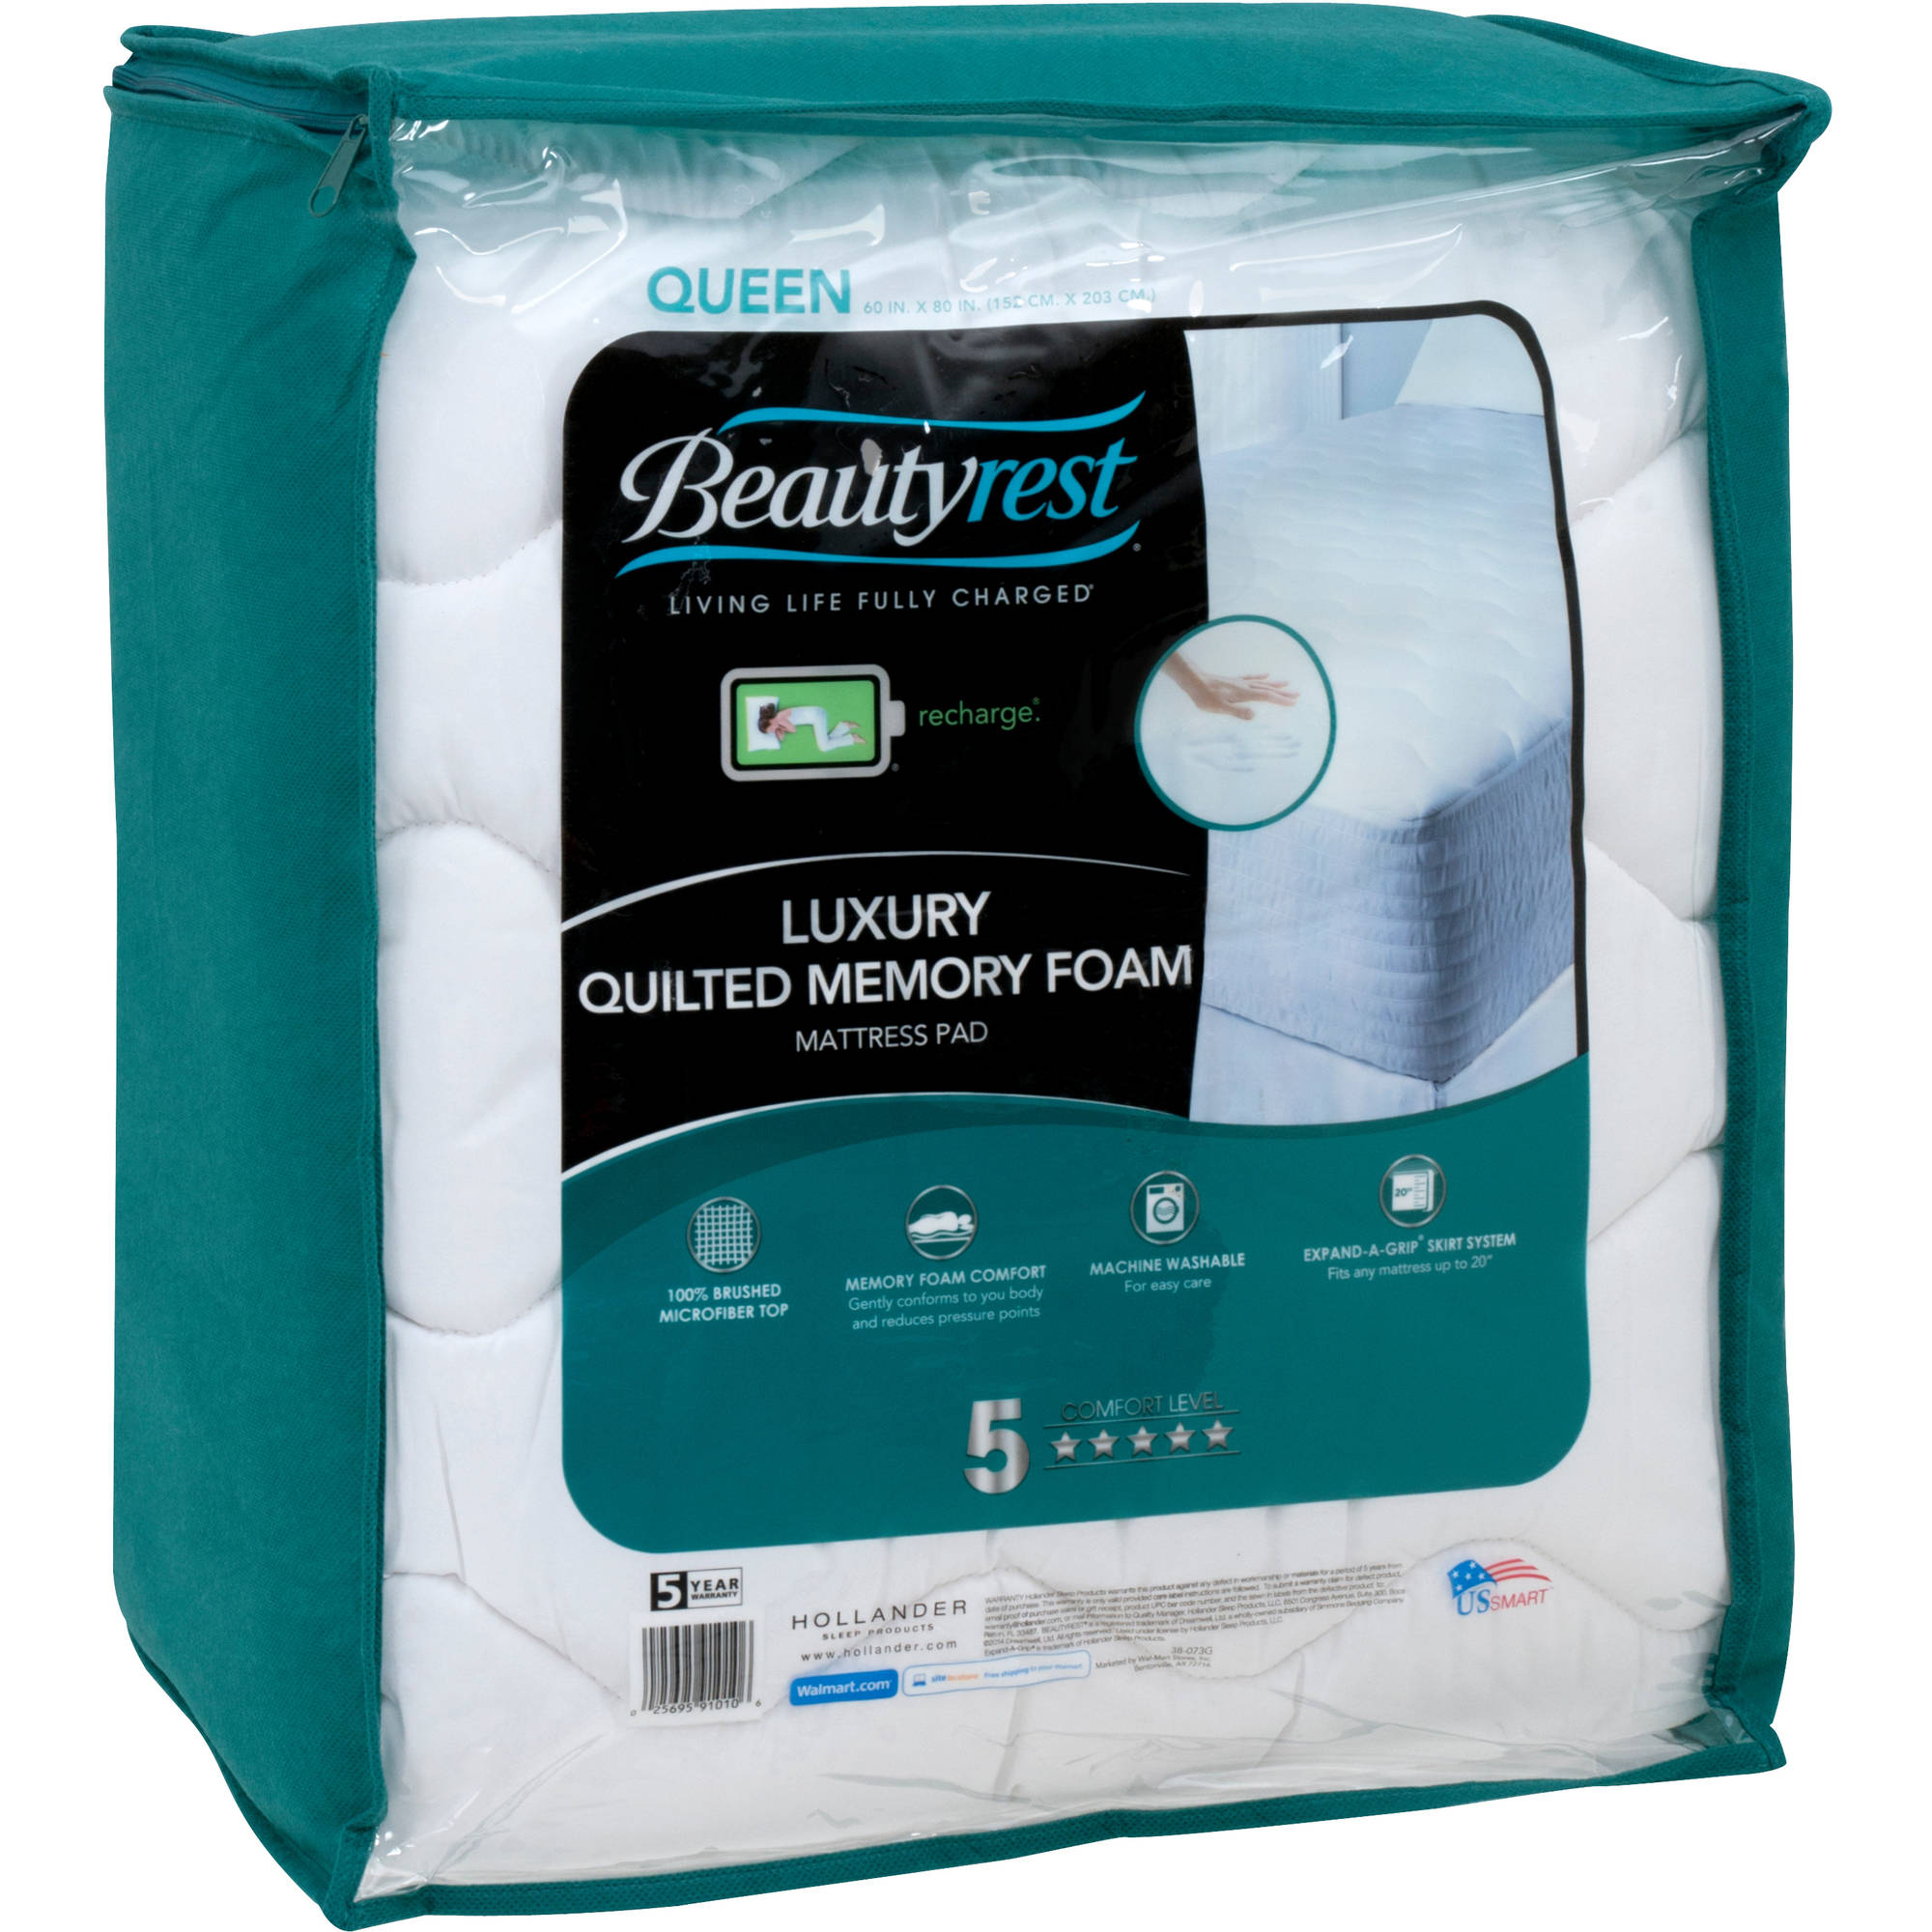 Beautyrest Quilted Memory Foam Mattress Pad